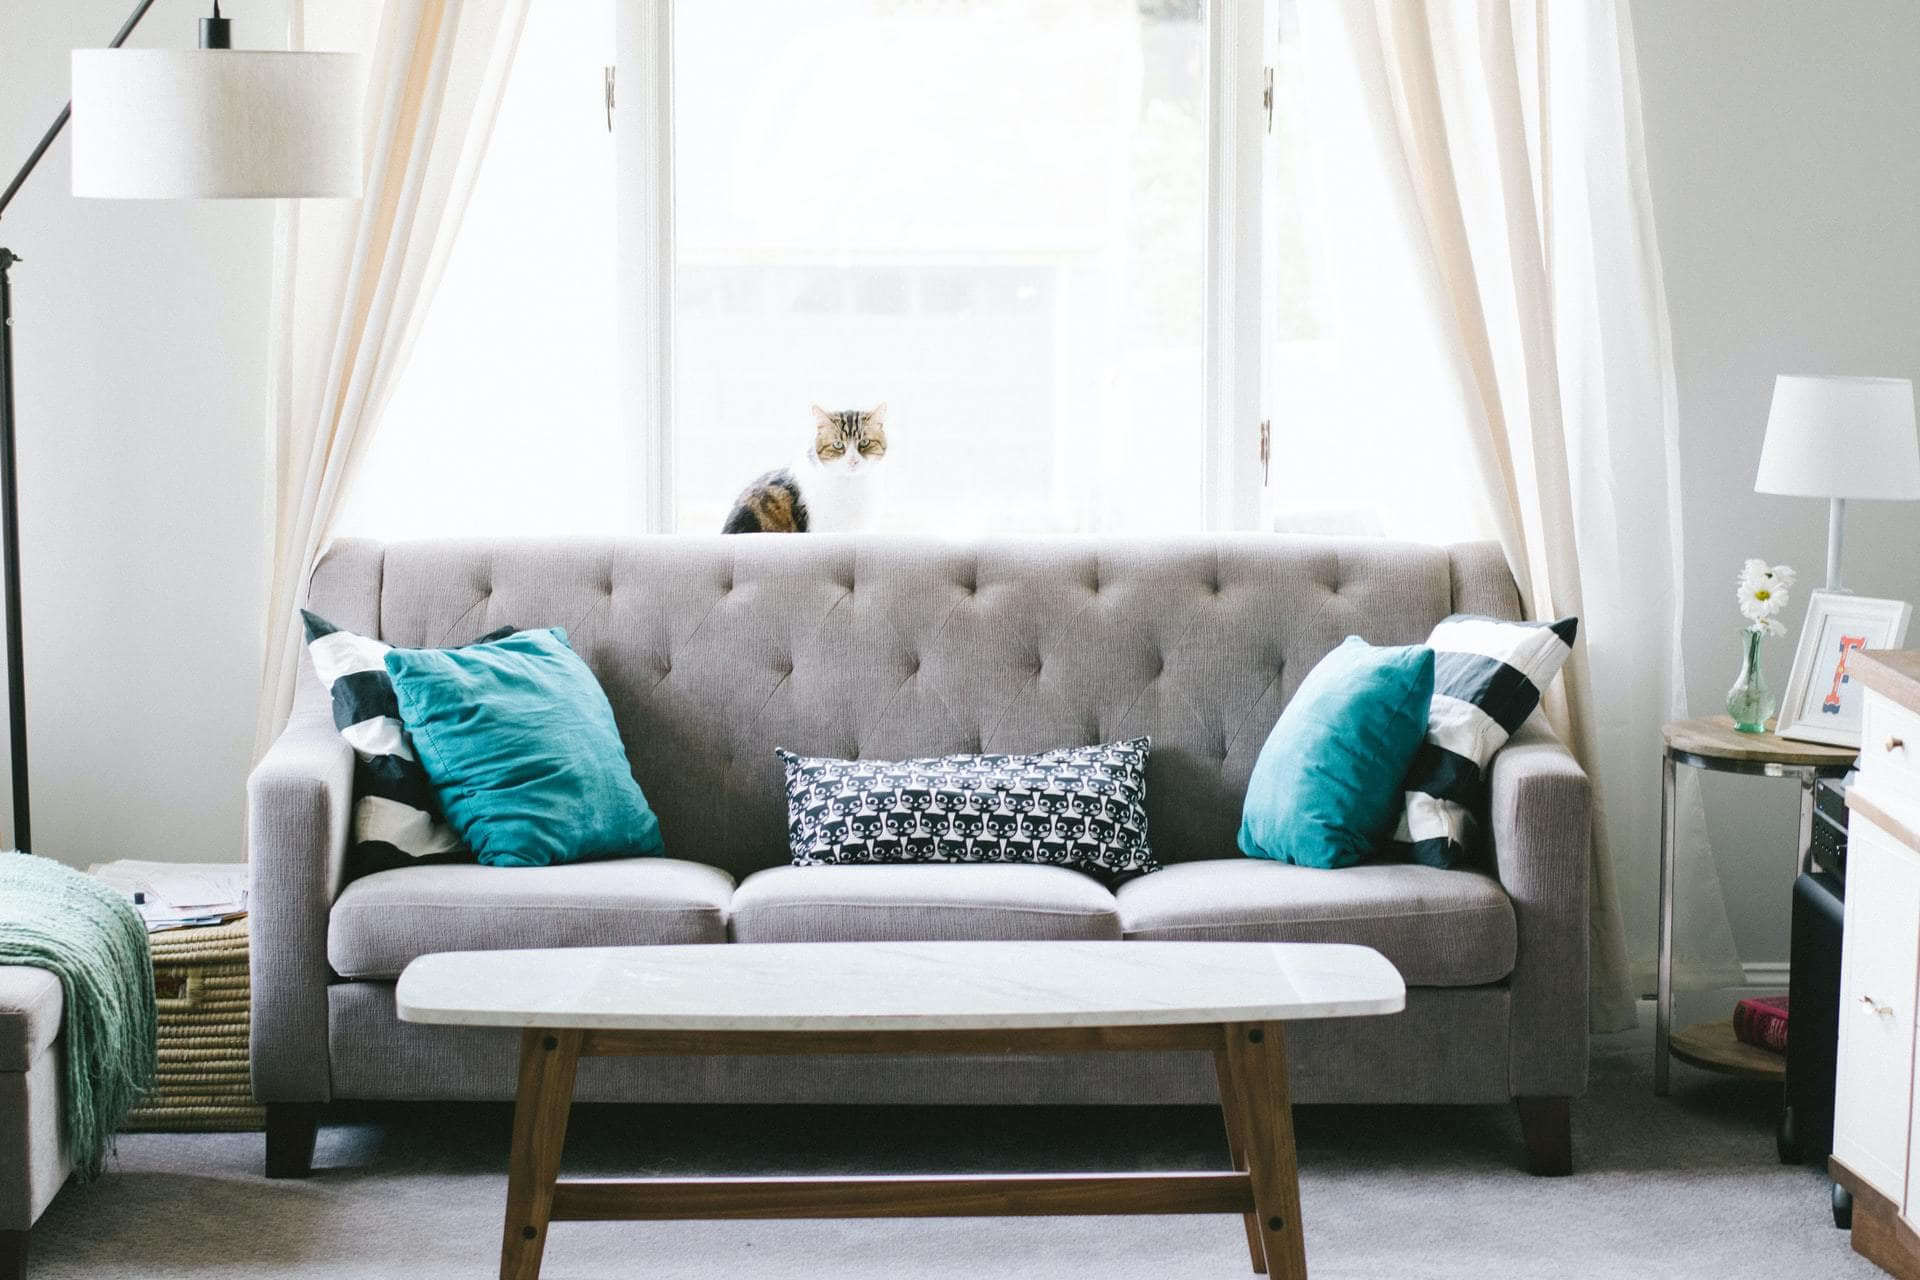 Turquoise Pillows With A Grey Sofa For a Calm Feel